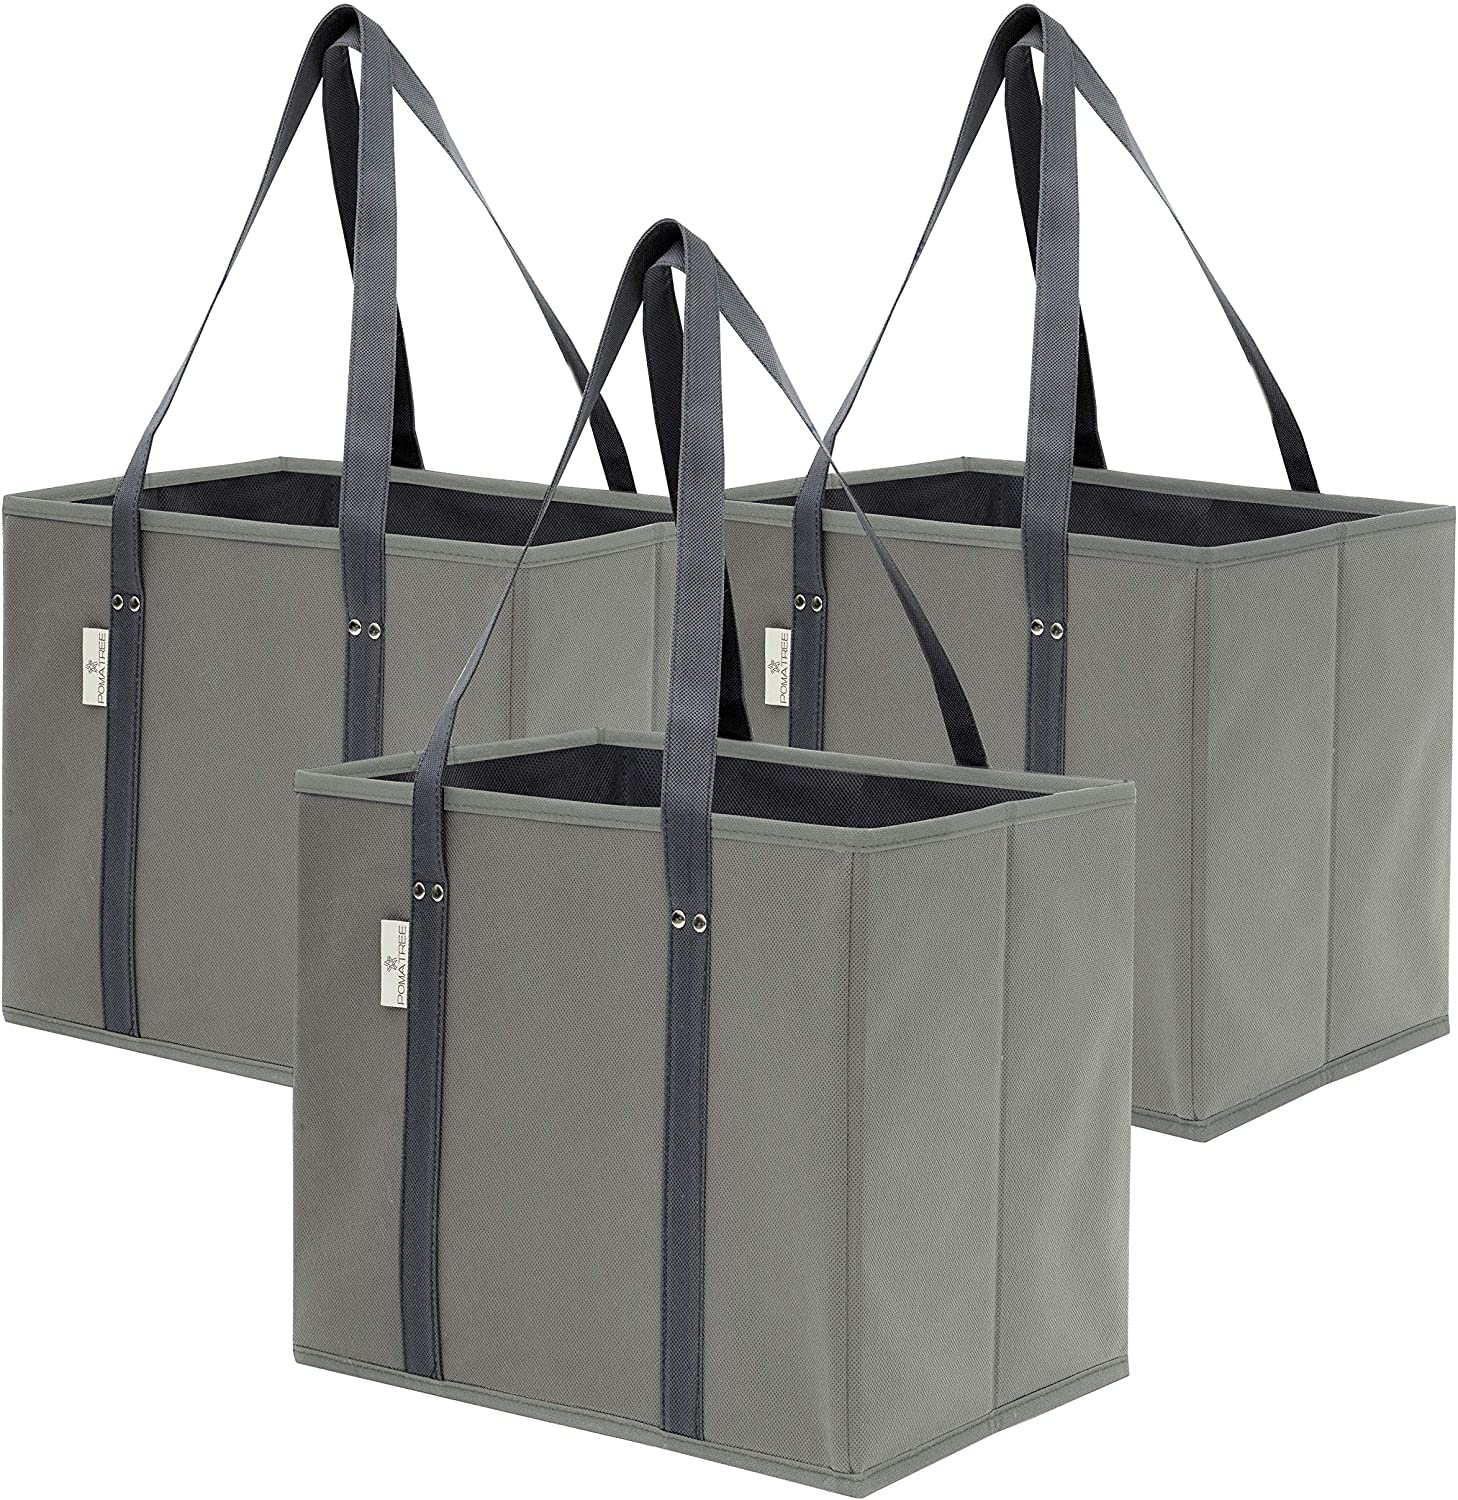 Premium 3 pack reusable grocery shopping box bags